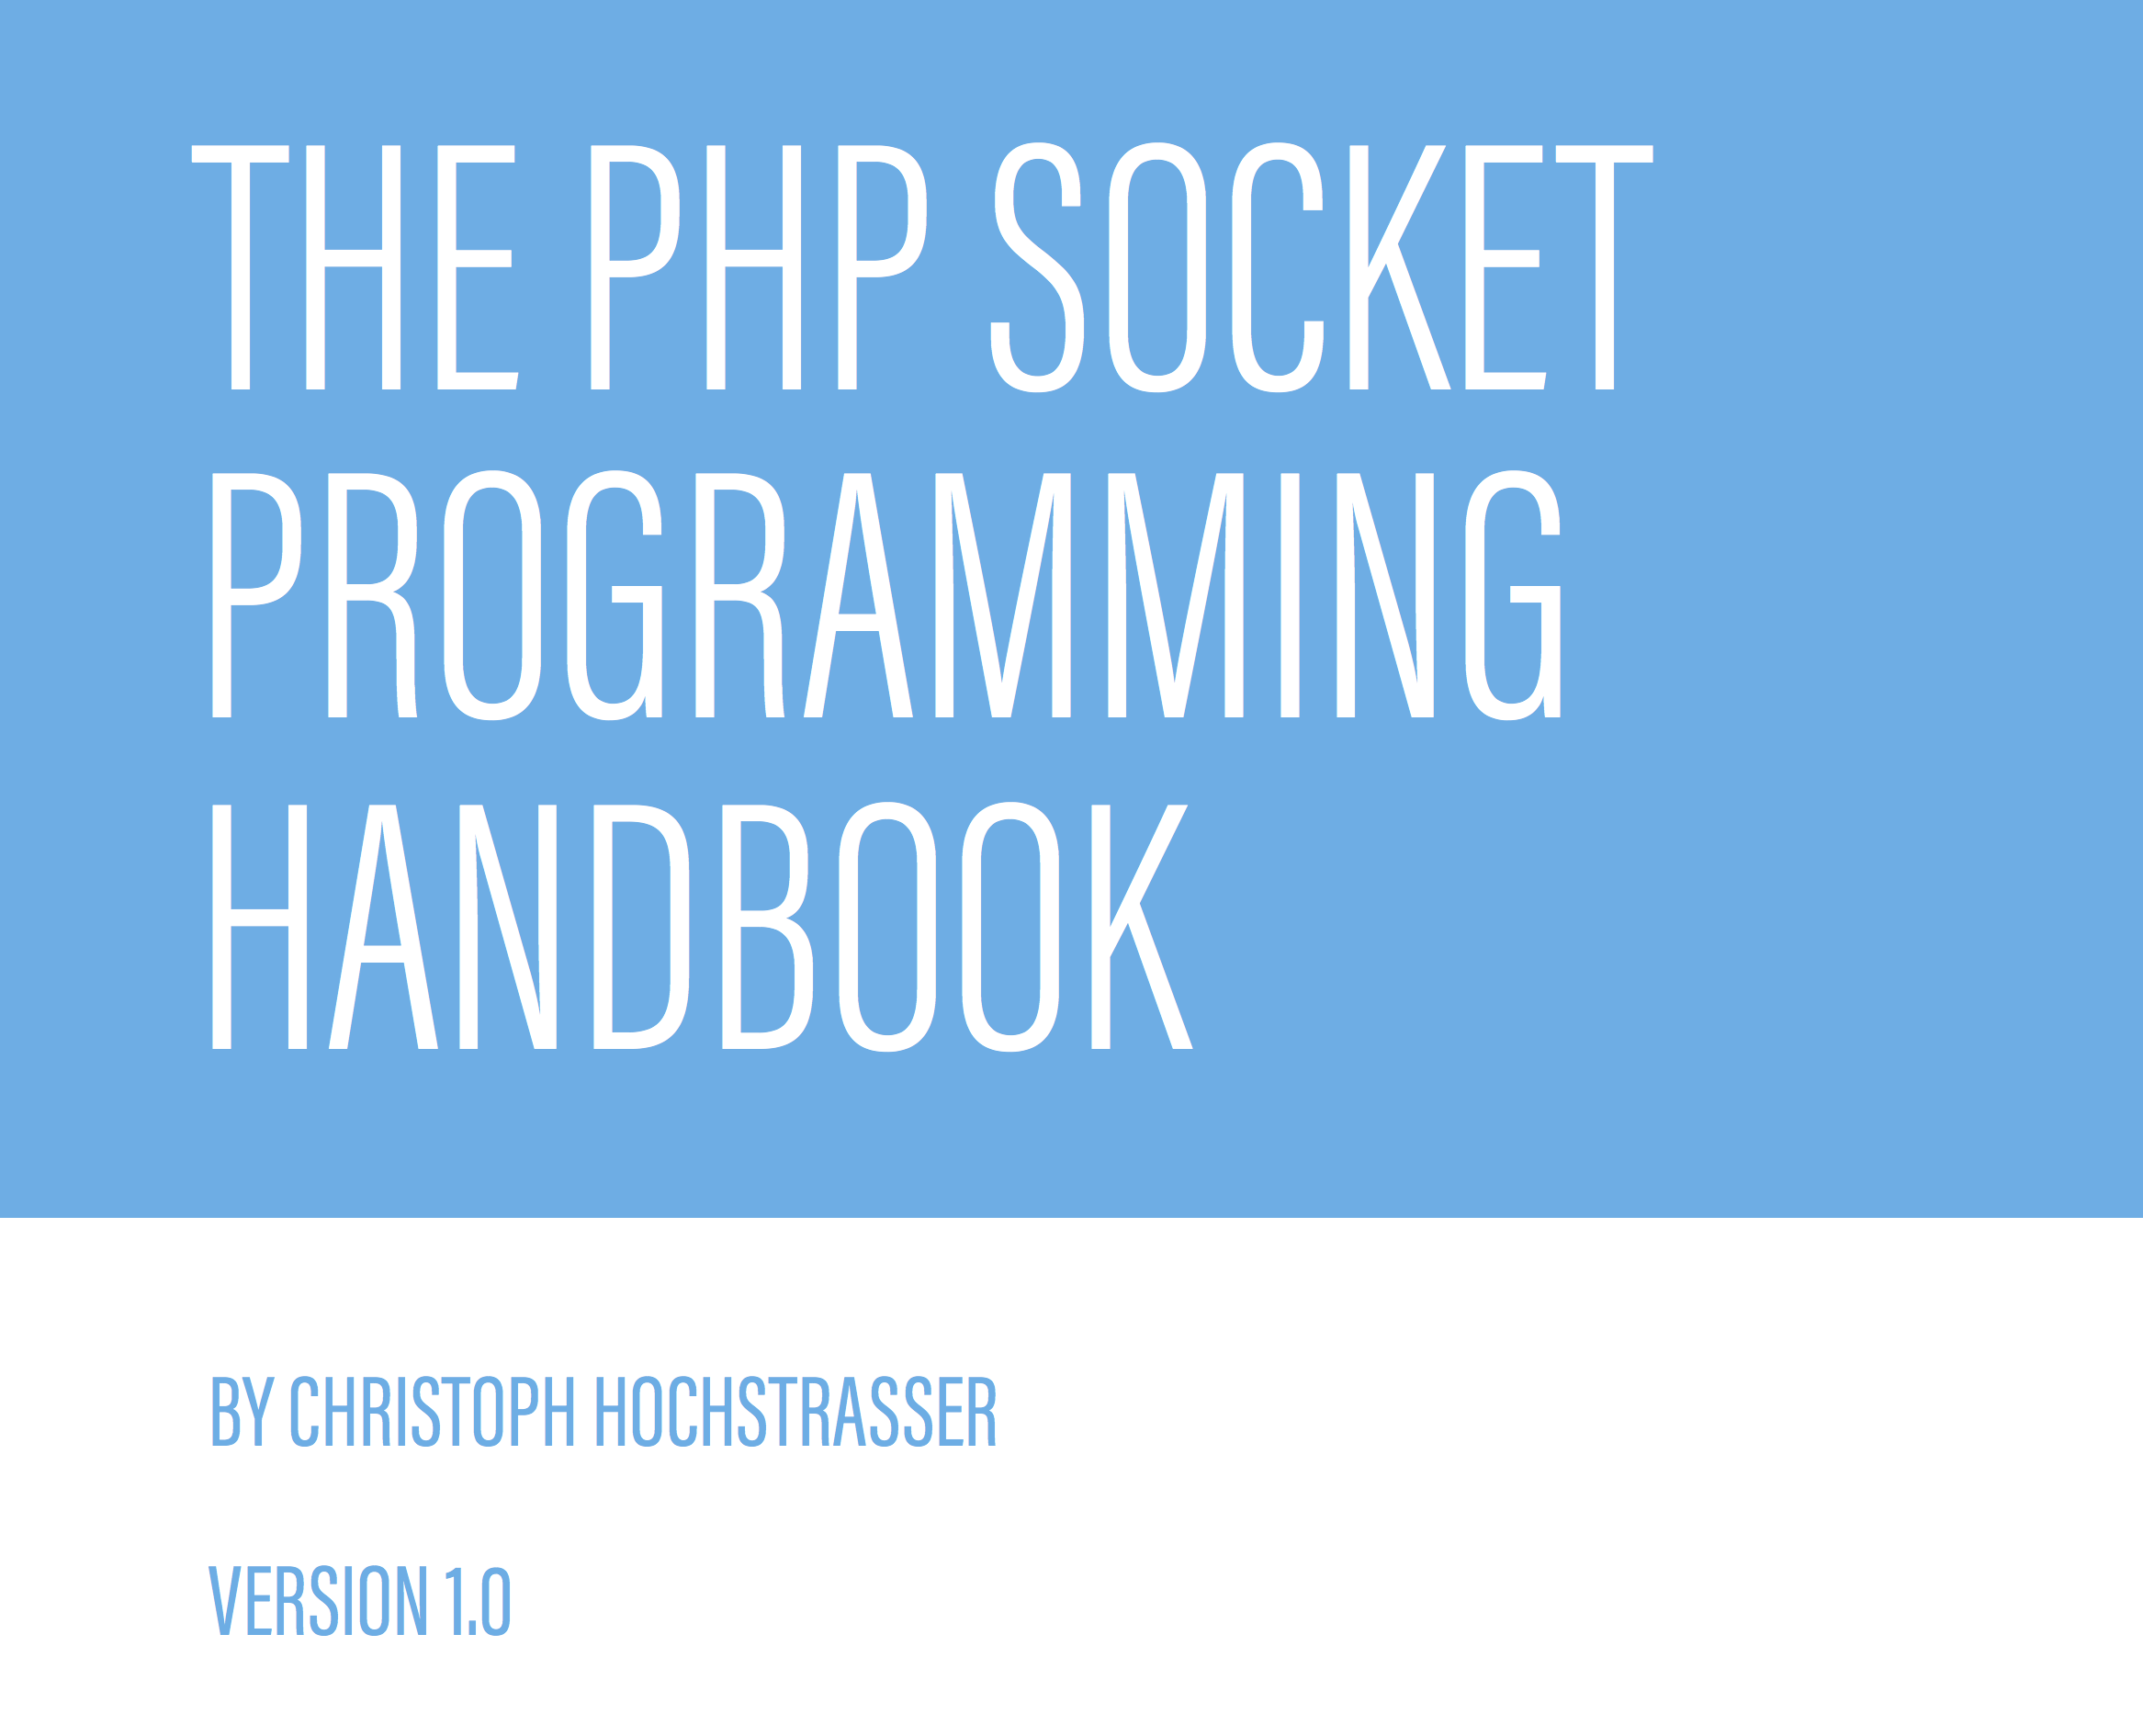 The PHP Socket Programming Handbook - Learn how to make servers in